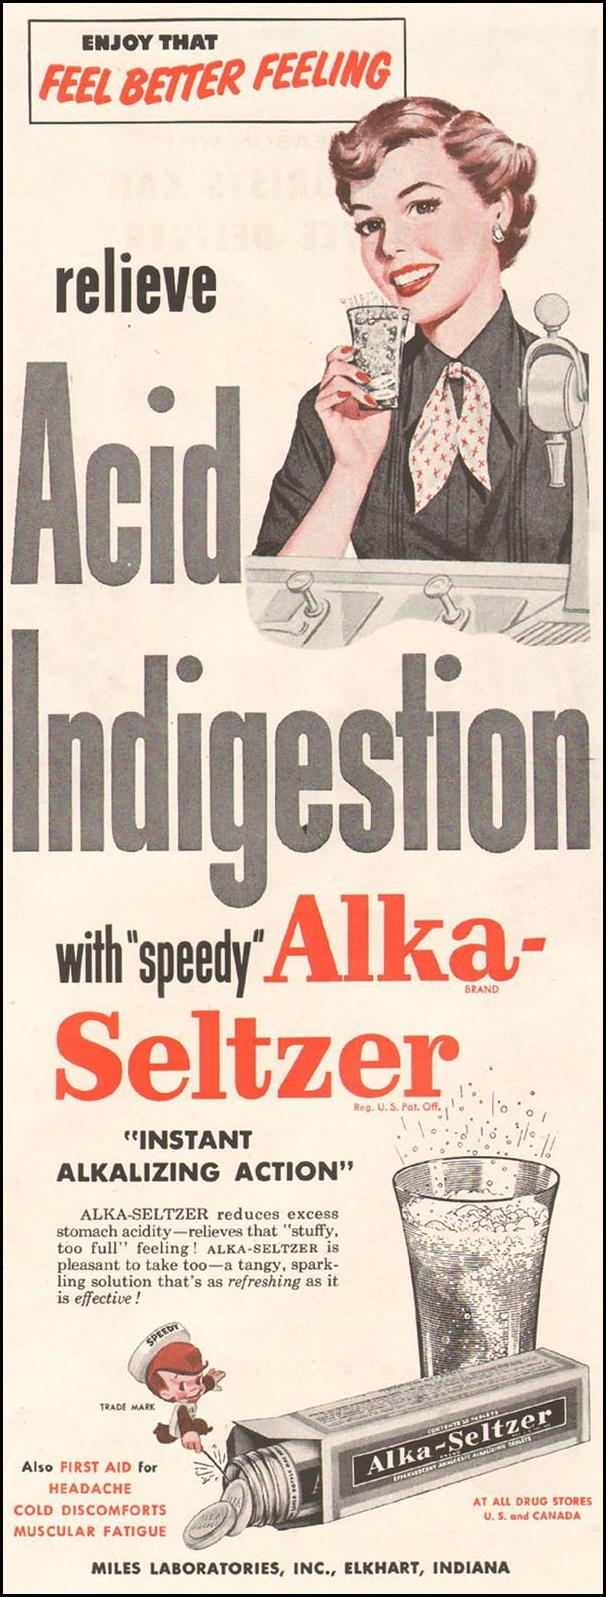 ALKA-SELTZER LADIES' HOME JOURNAL 03/01/1954 p. 89